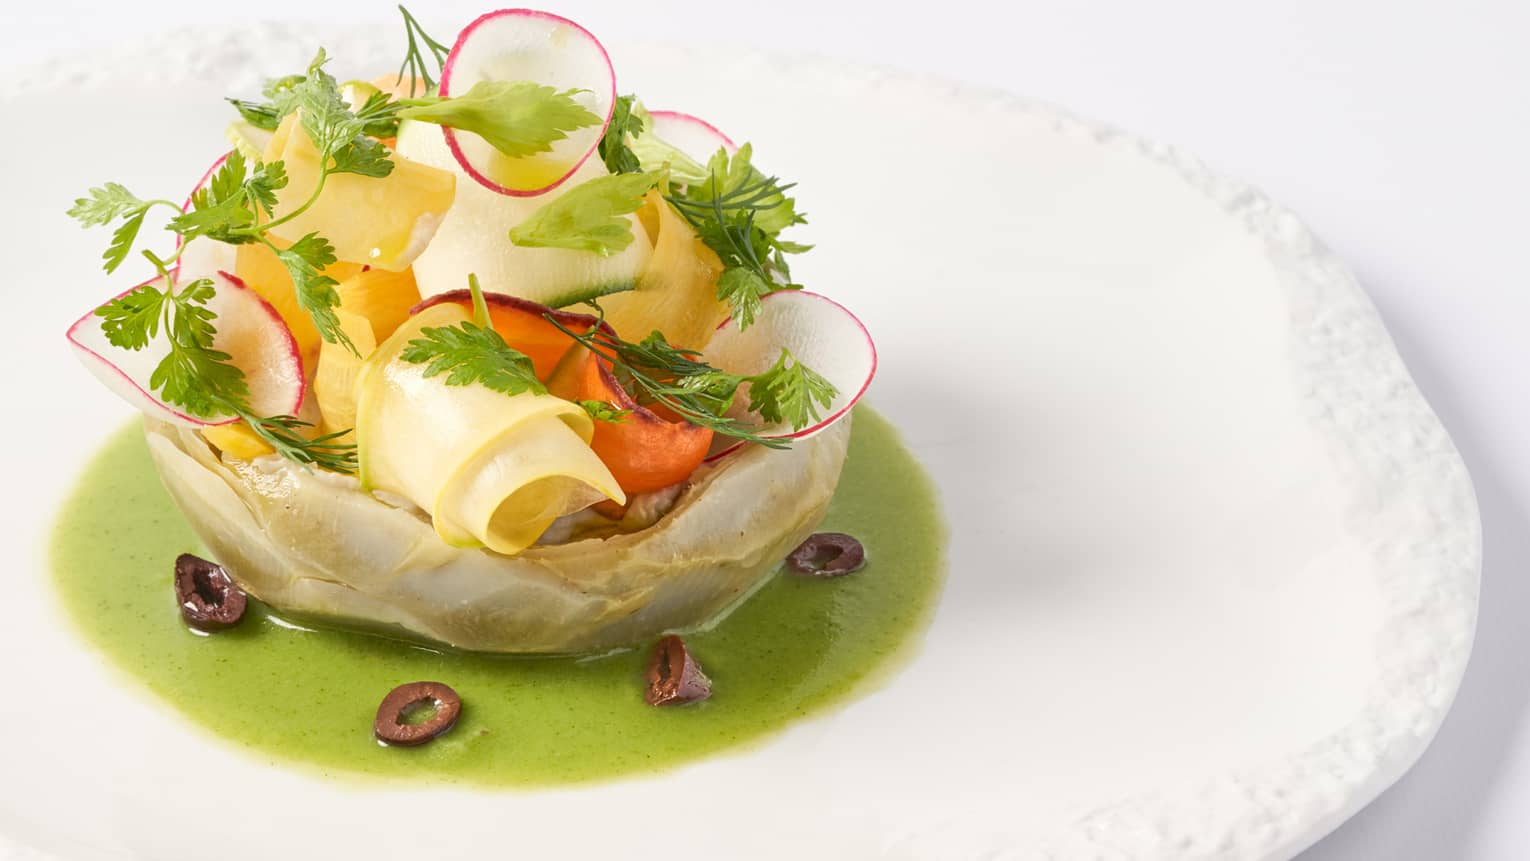 Camus artichokes in vinaigrette of young yegetables on white round plate